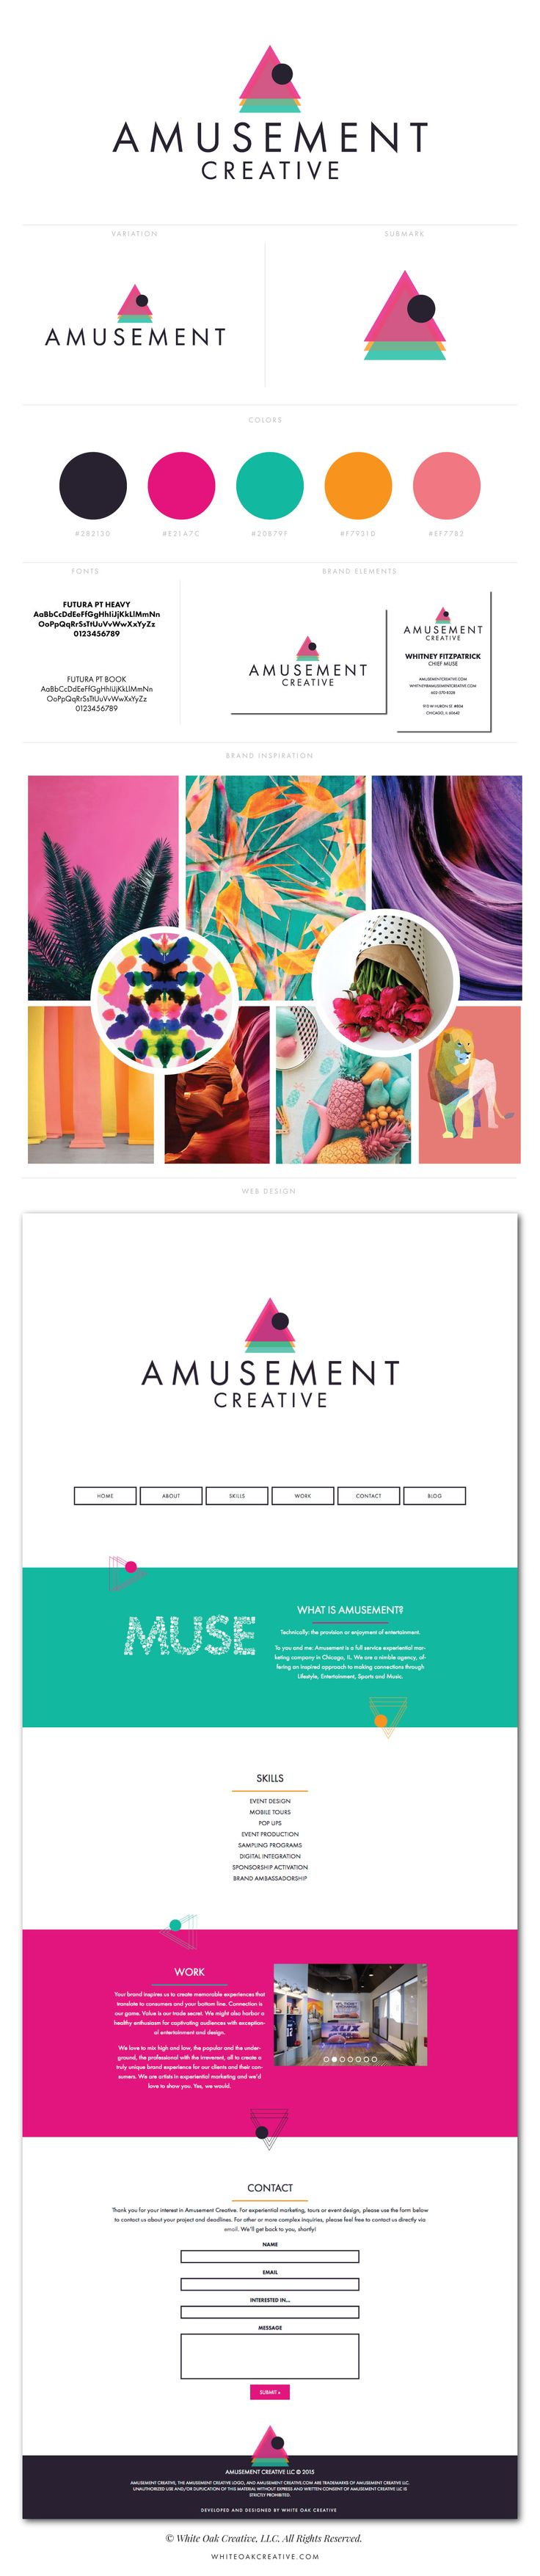 Amusement Creative branding and logo design by White Oak Creative